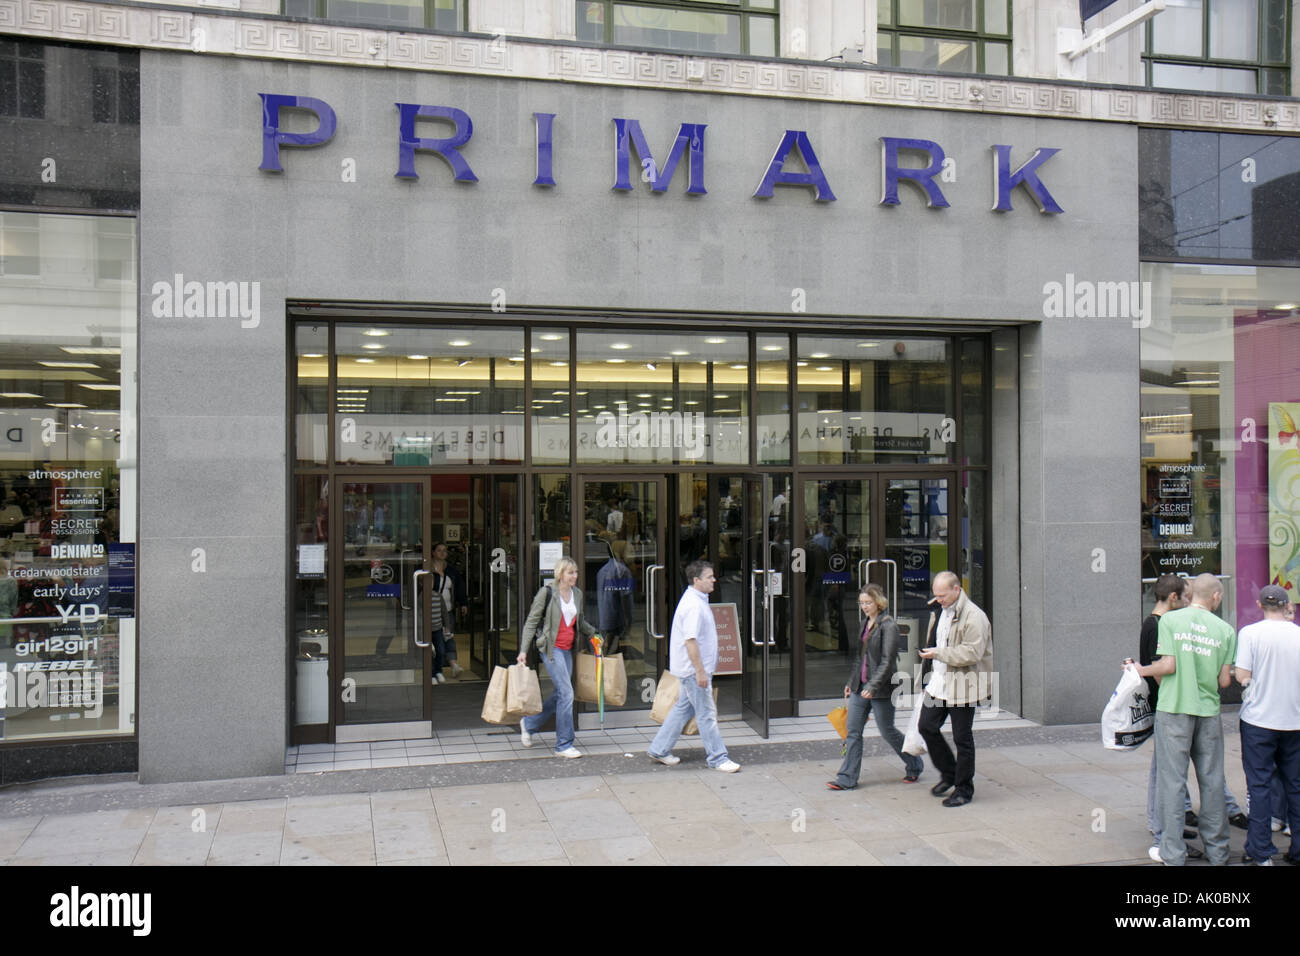 marketing in primark 1 introduction primark after establishing in ireland in 1969 has owned over 270 shops in some europe states for international enlargement scheme primark has planned to open large shop in us in 2015.